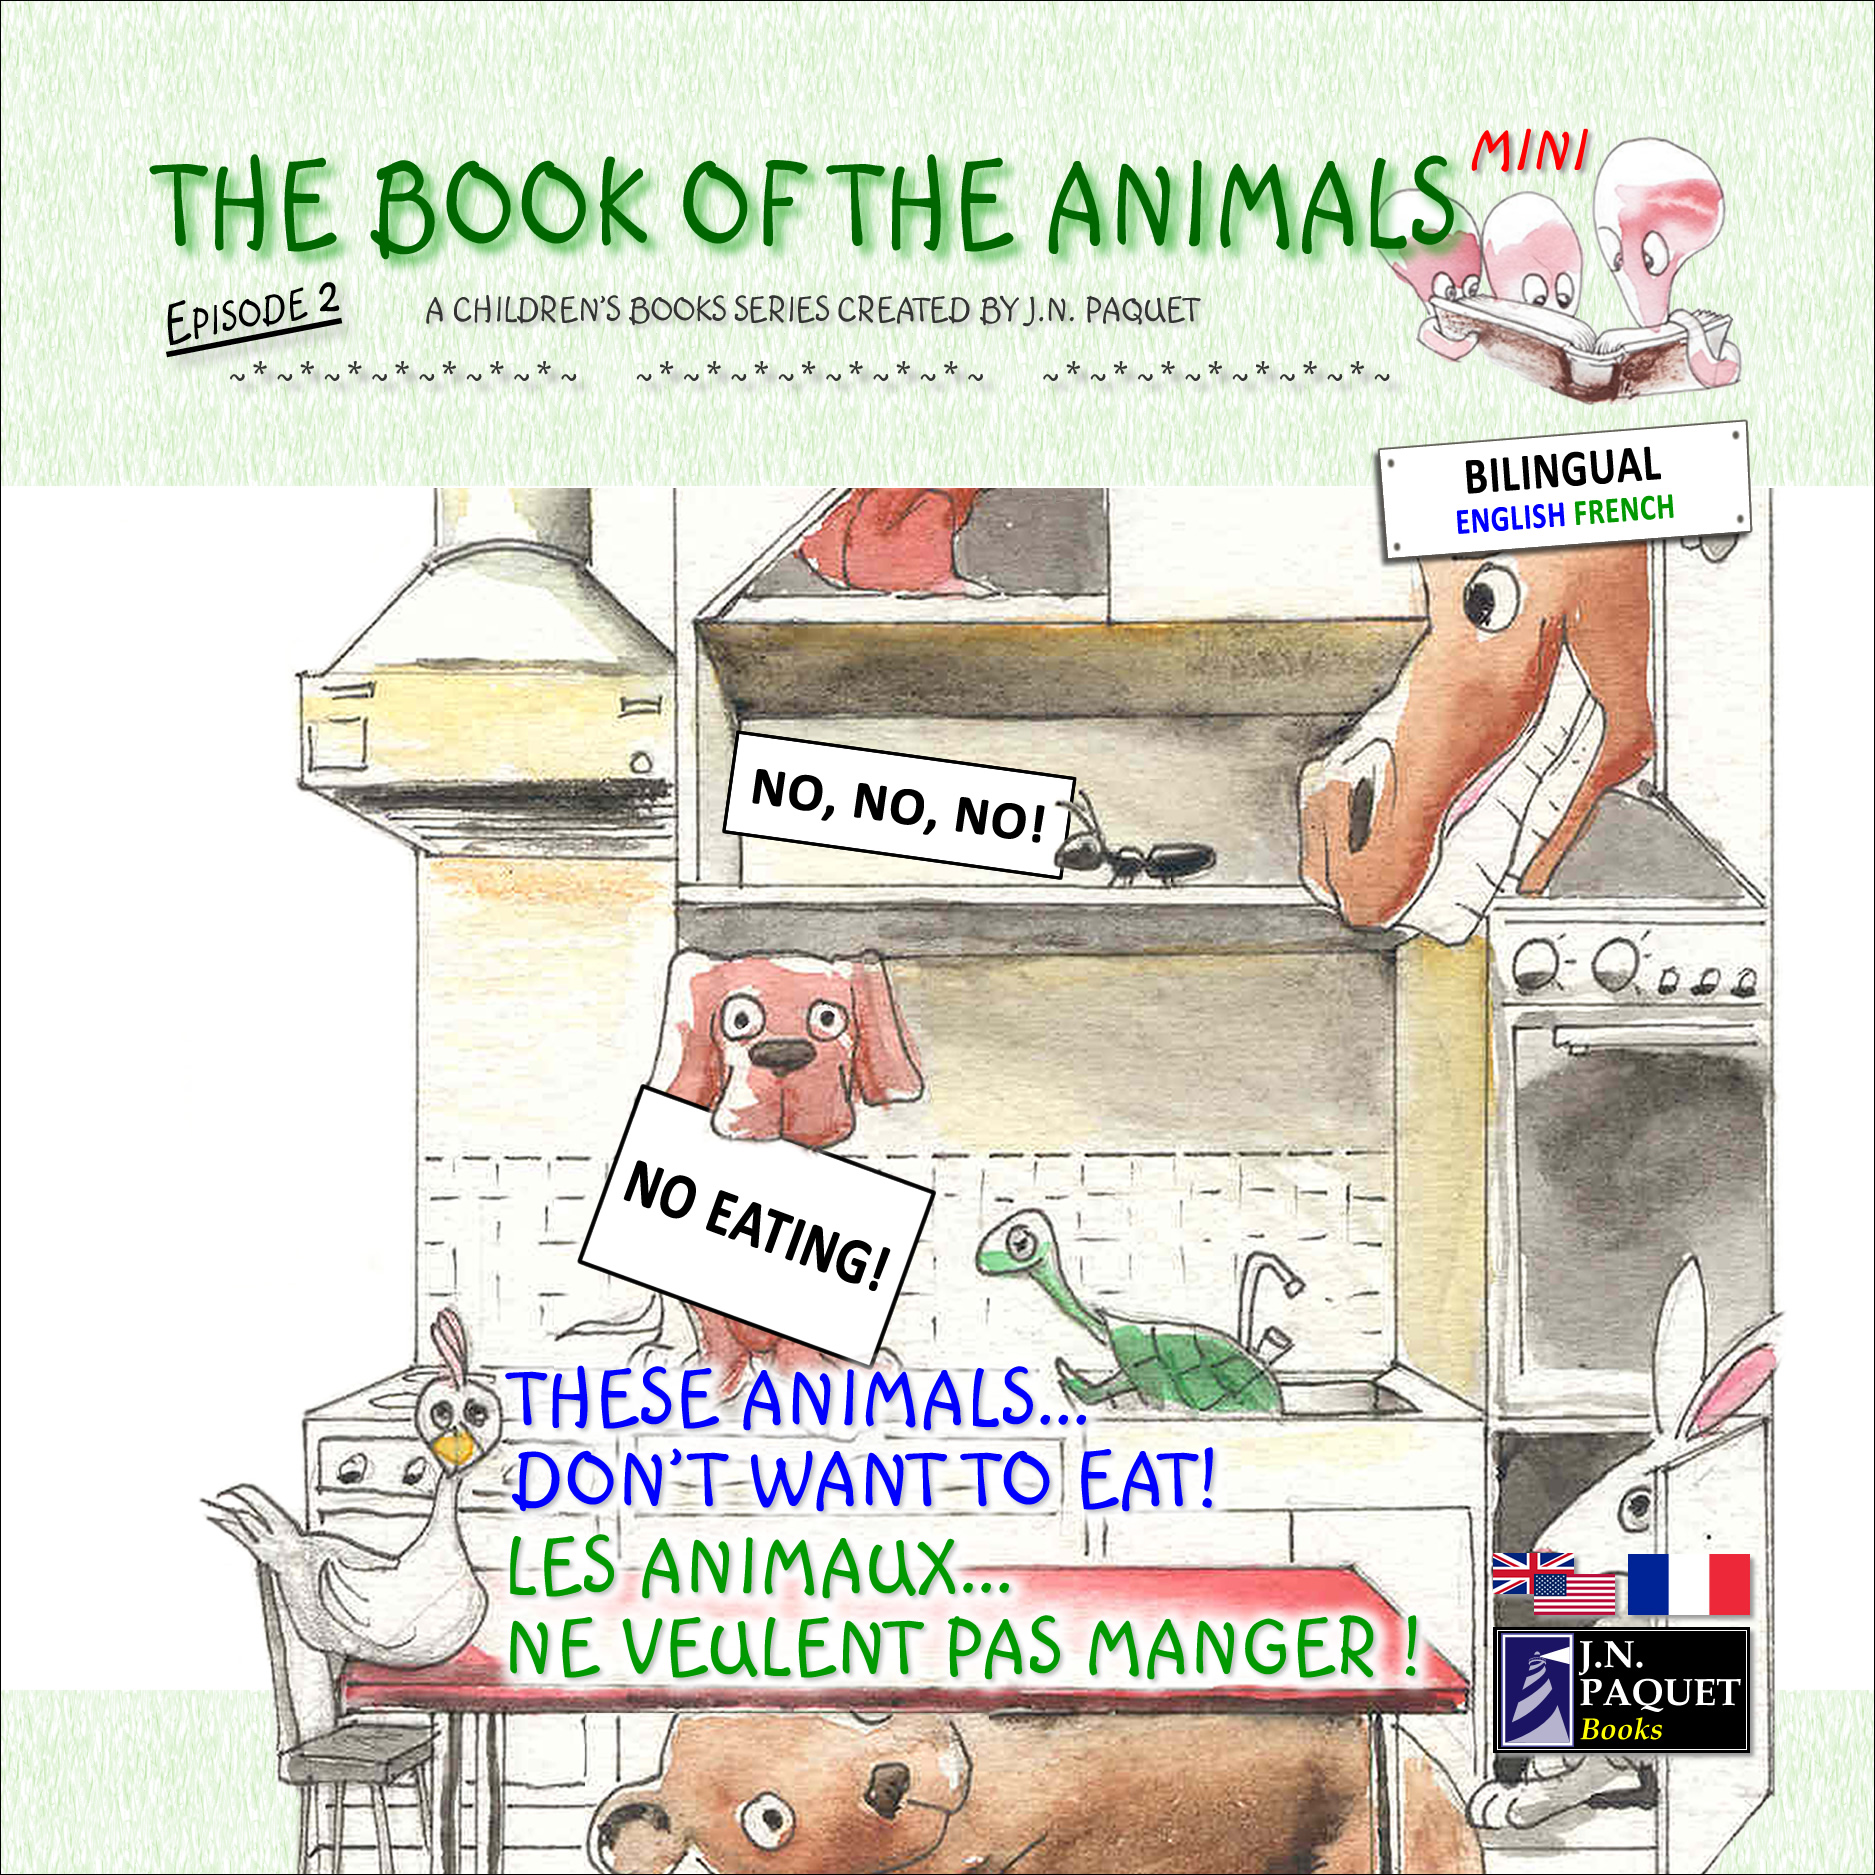 The Book of The Animals - Mini - Episode 2 (Bilingual English-French)